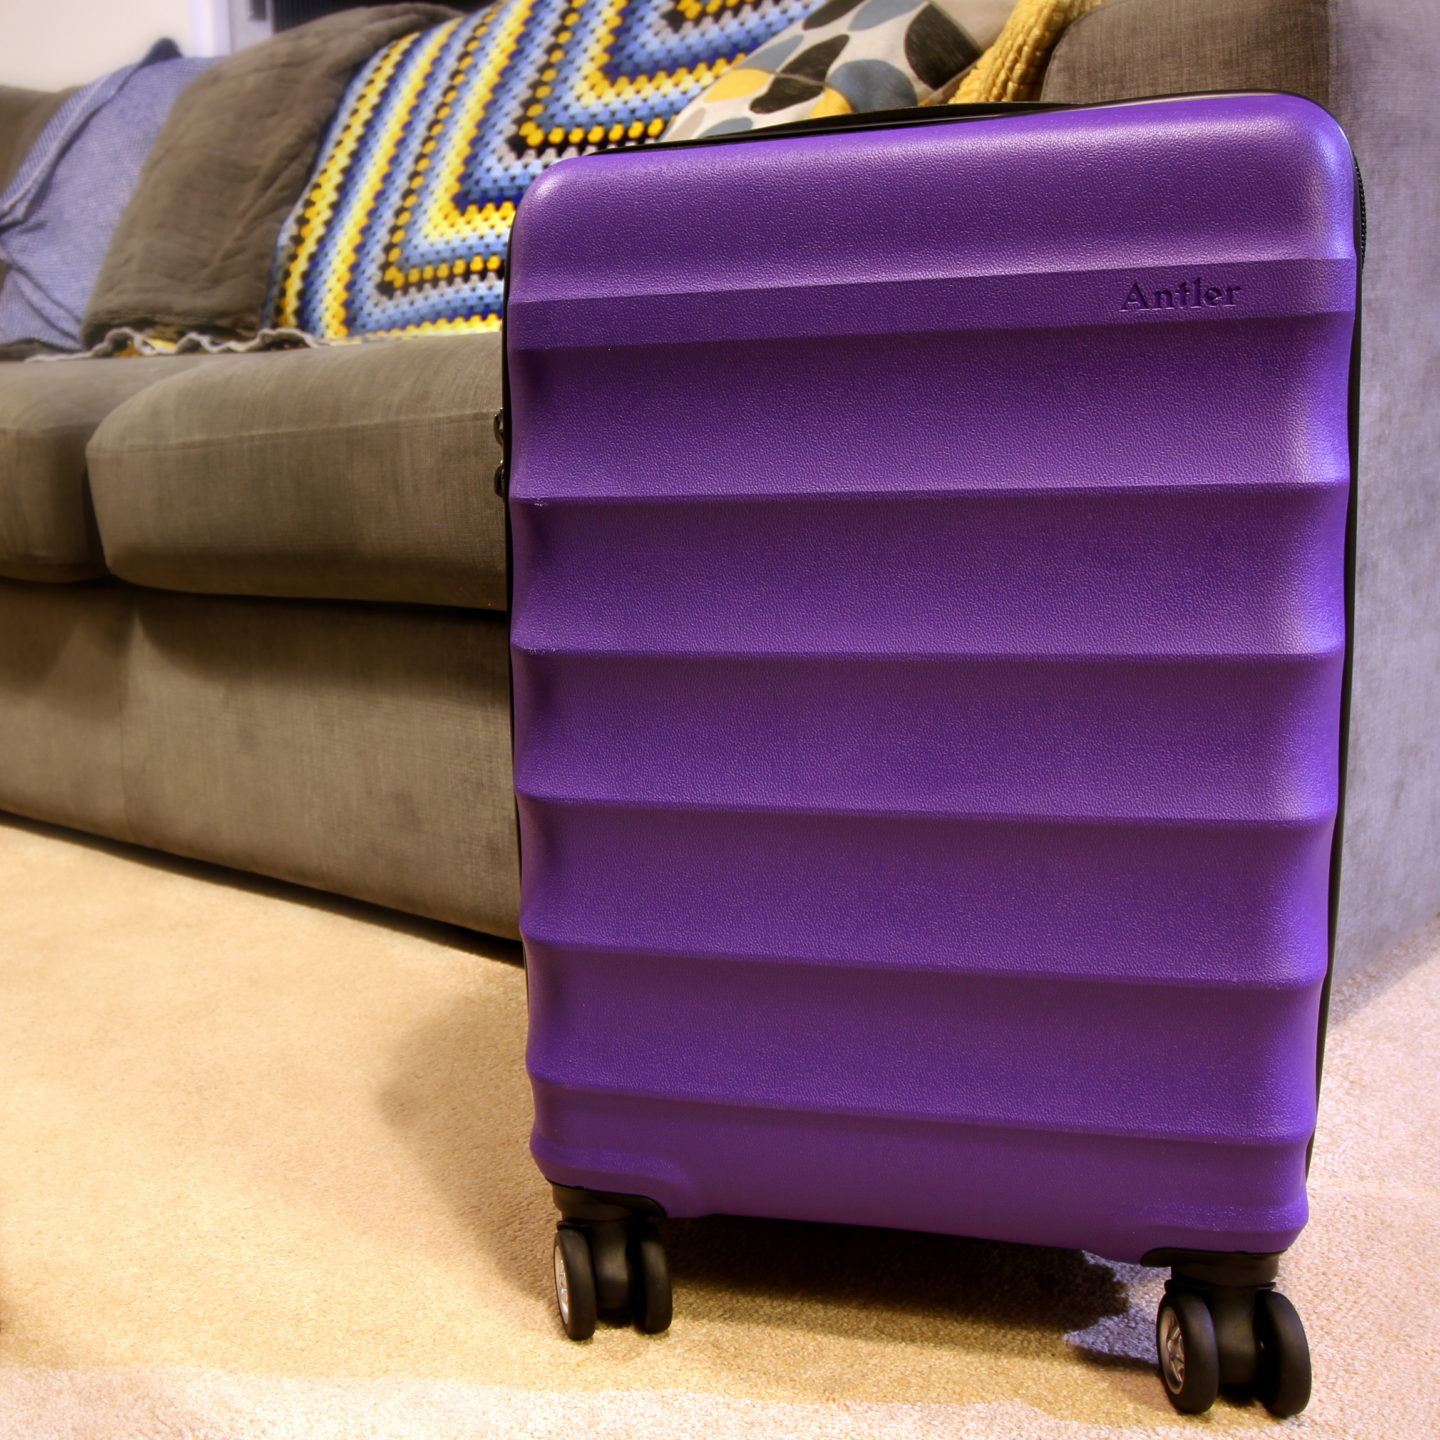 Antler Juno Cabin Suitcase Review